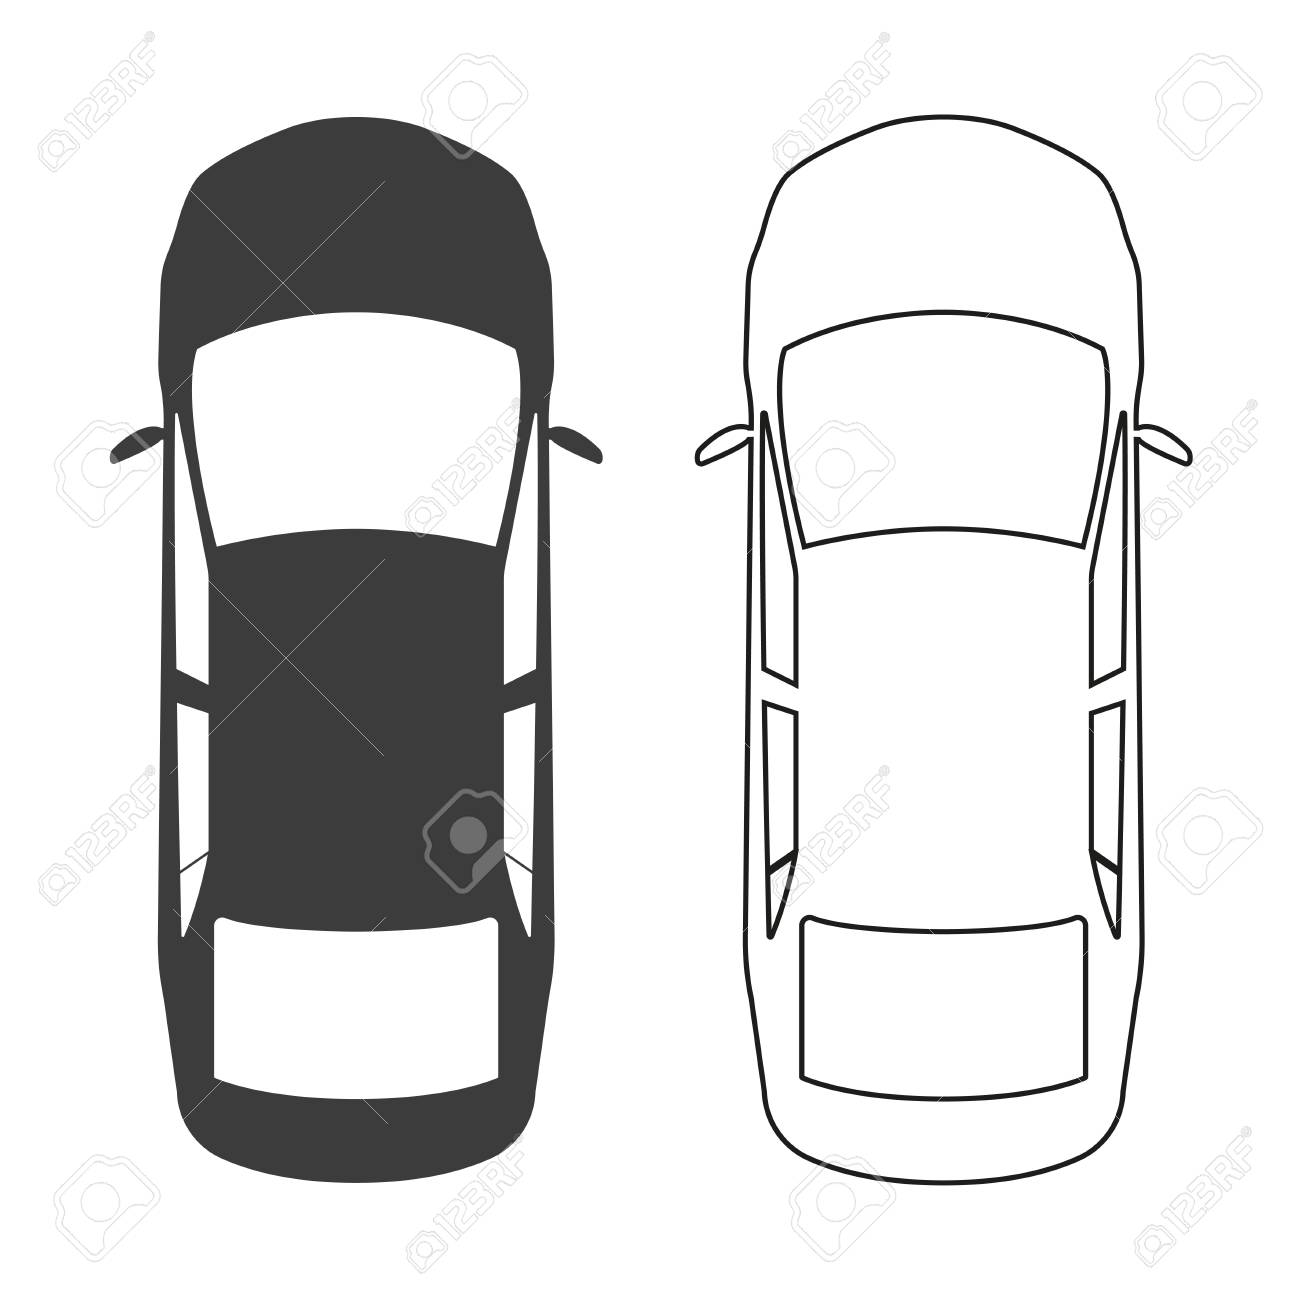 Car Icon Top View Vector Illustration Royalty Free Cliparts